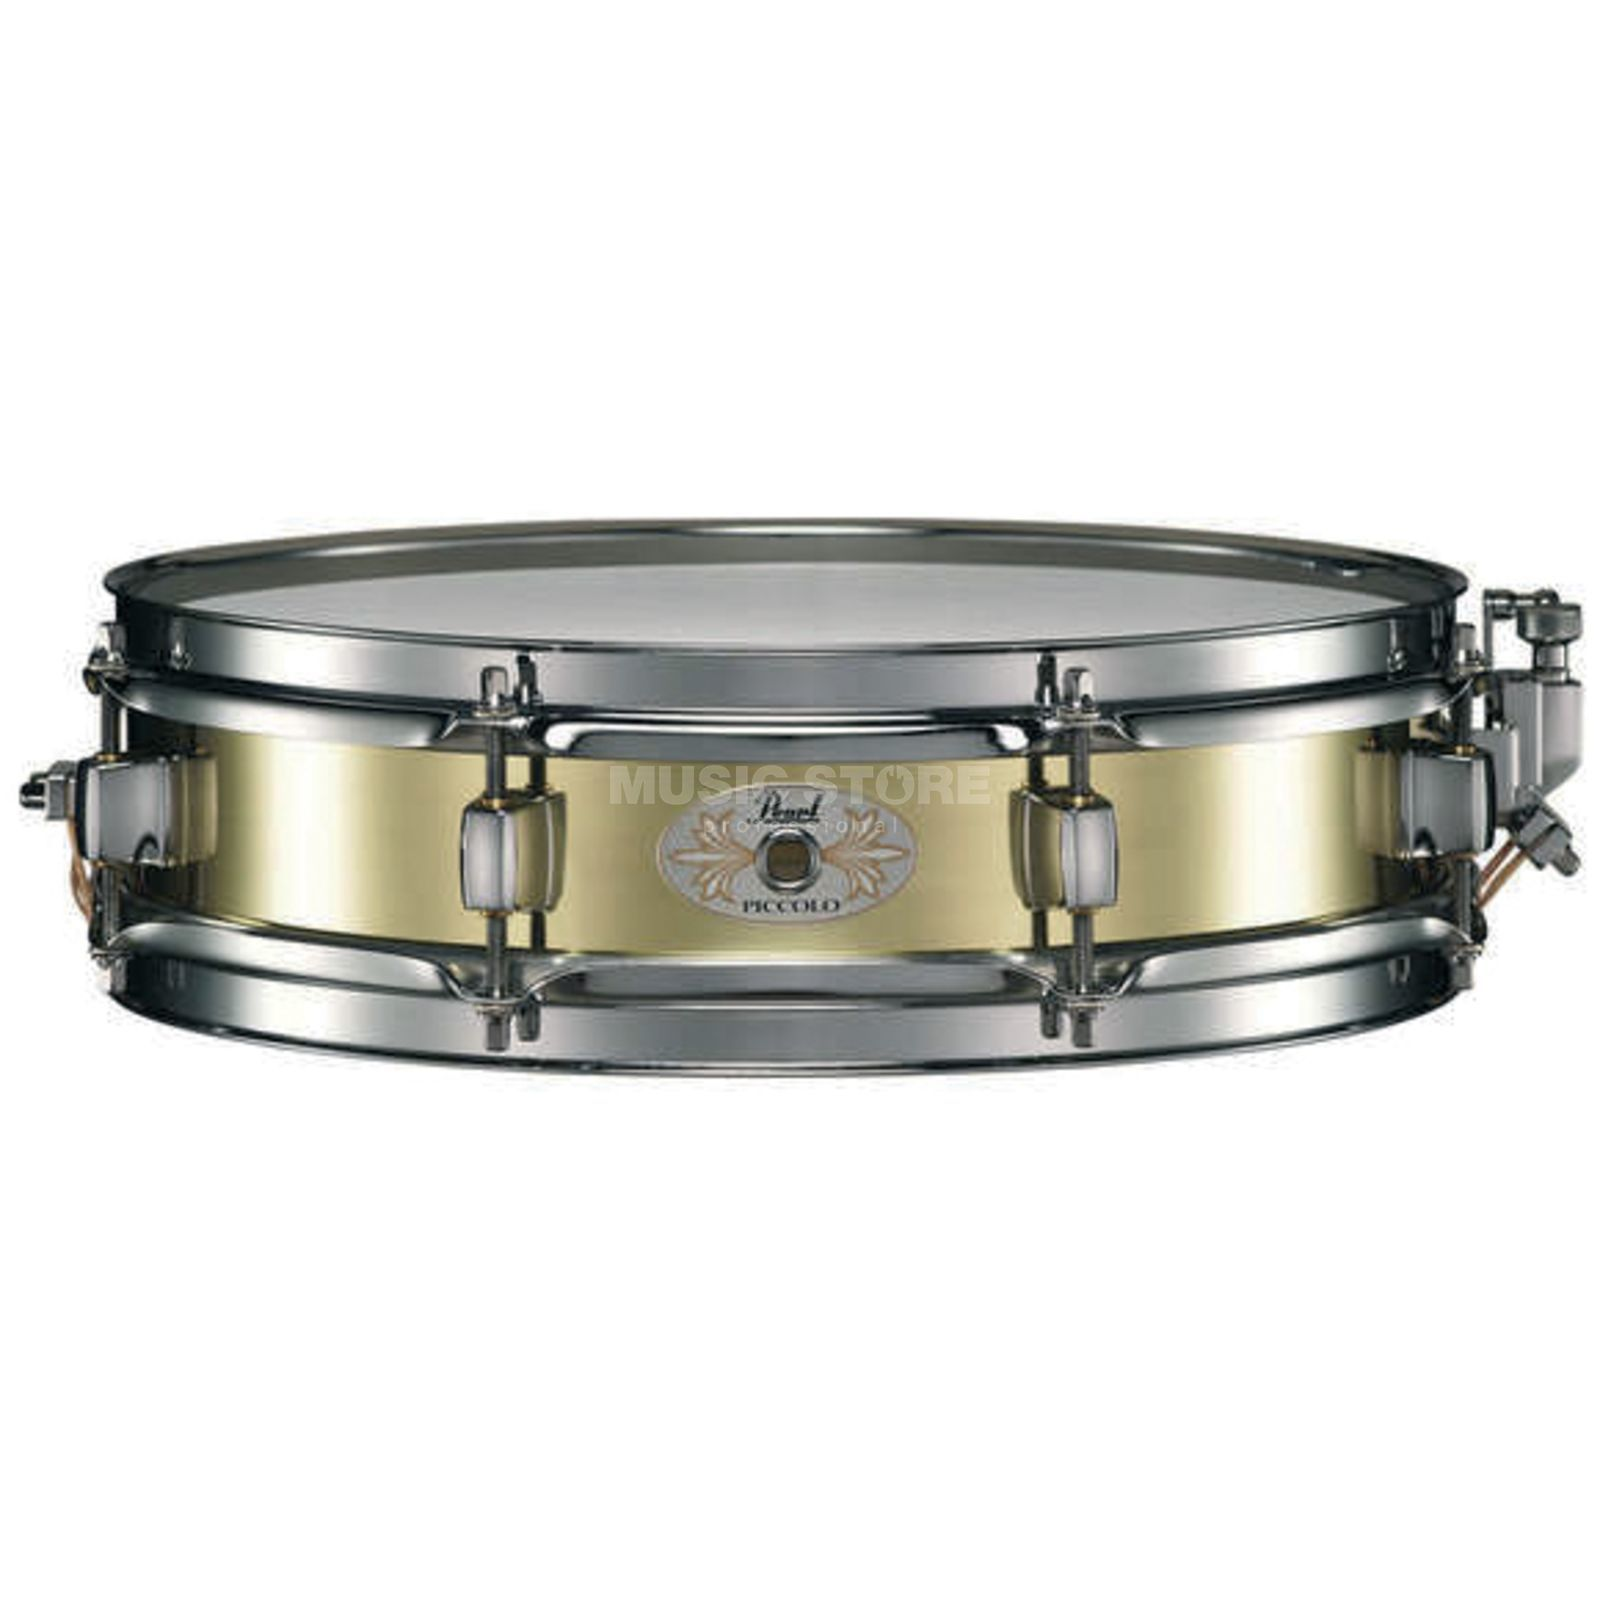 "Pearl B1330 Piccolo Snare, 13""x3"", Brass Product Image"